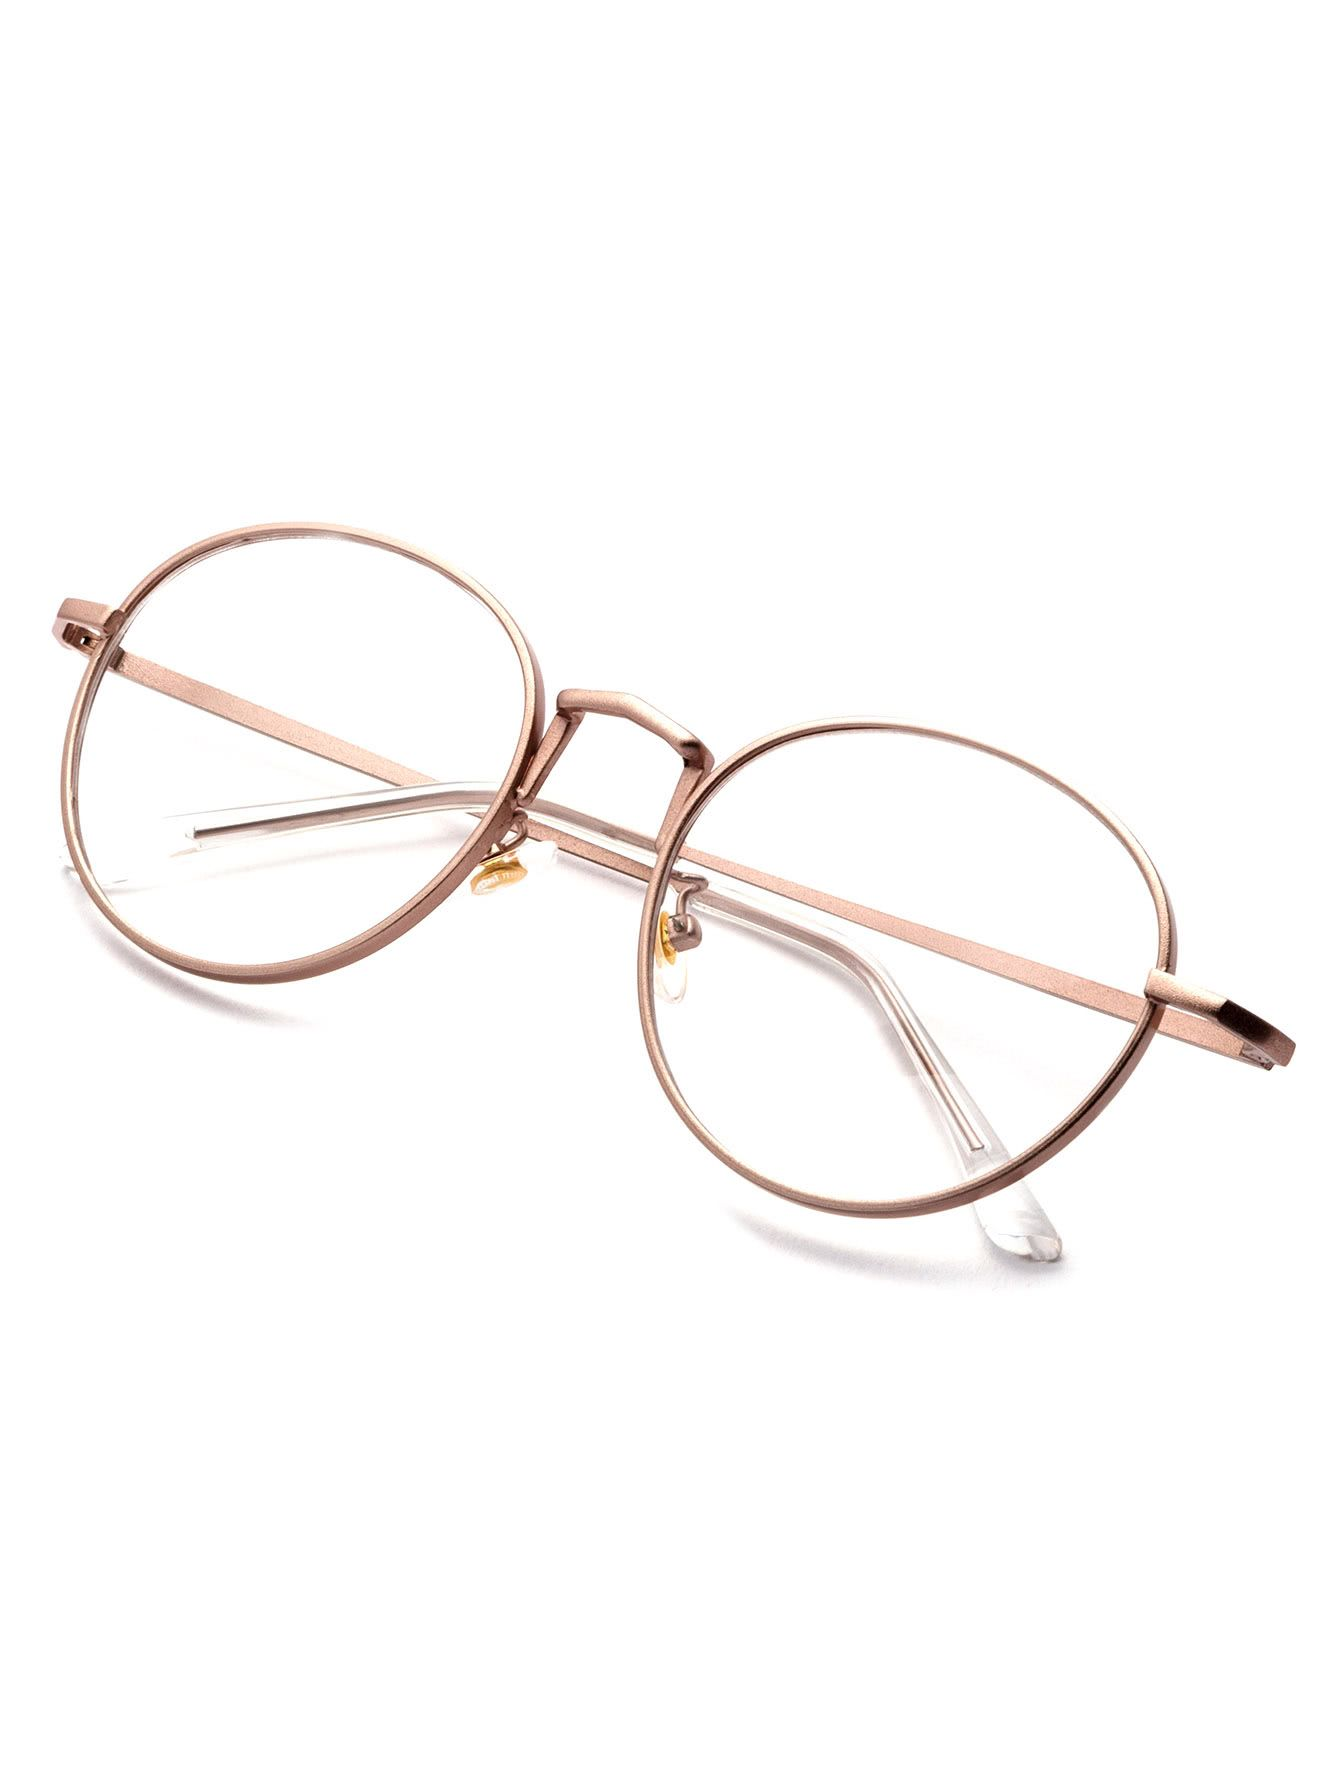 77c19ebe10ef Rose Gold Delicate Frame Clear Lens Glasses in 2019